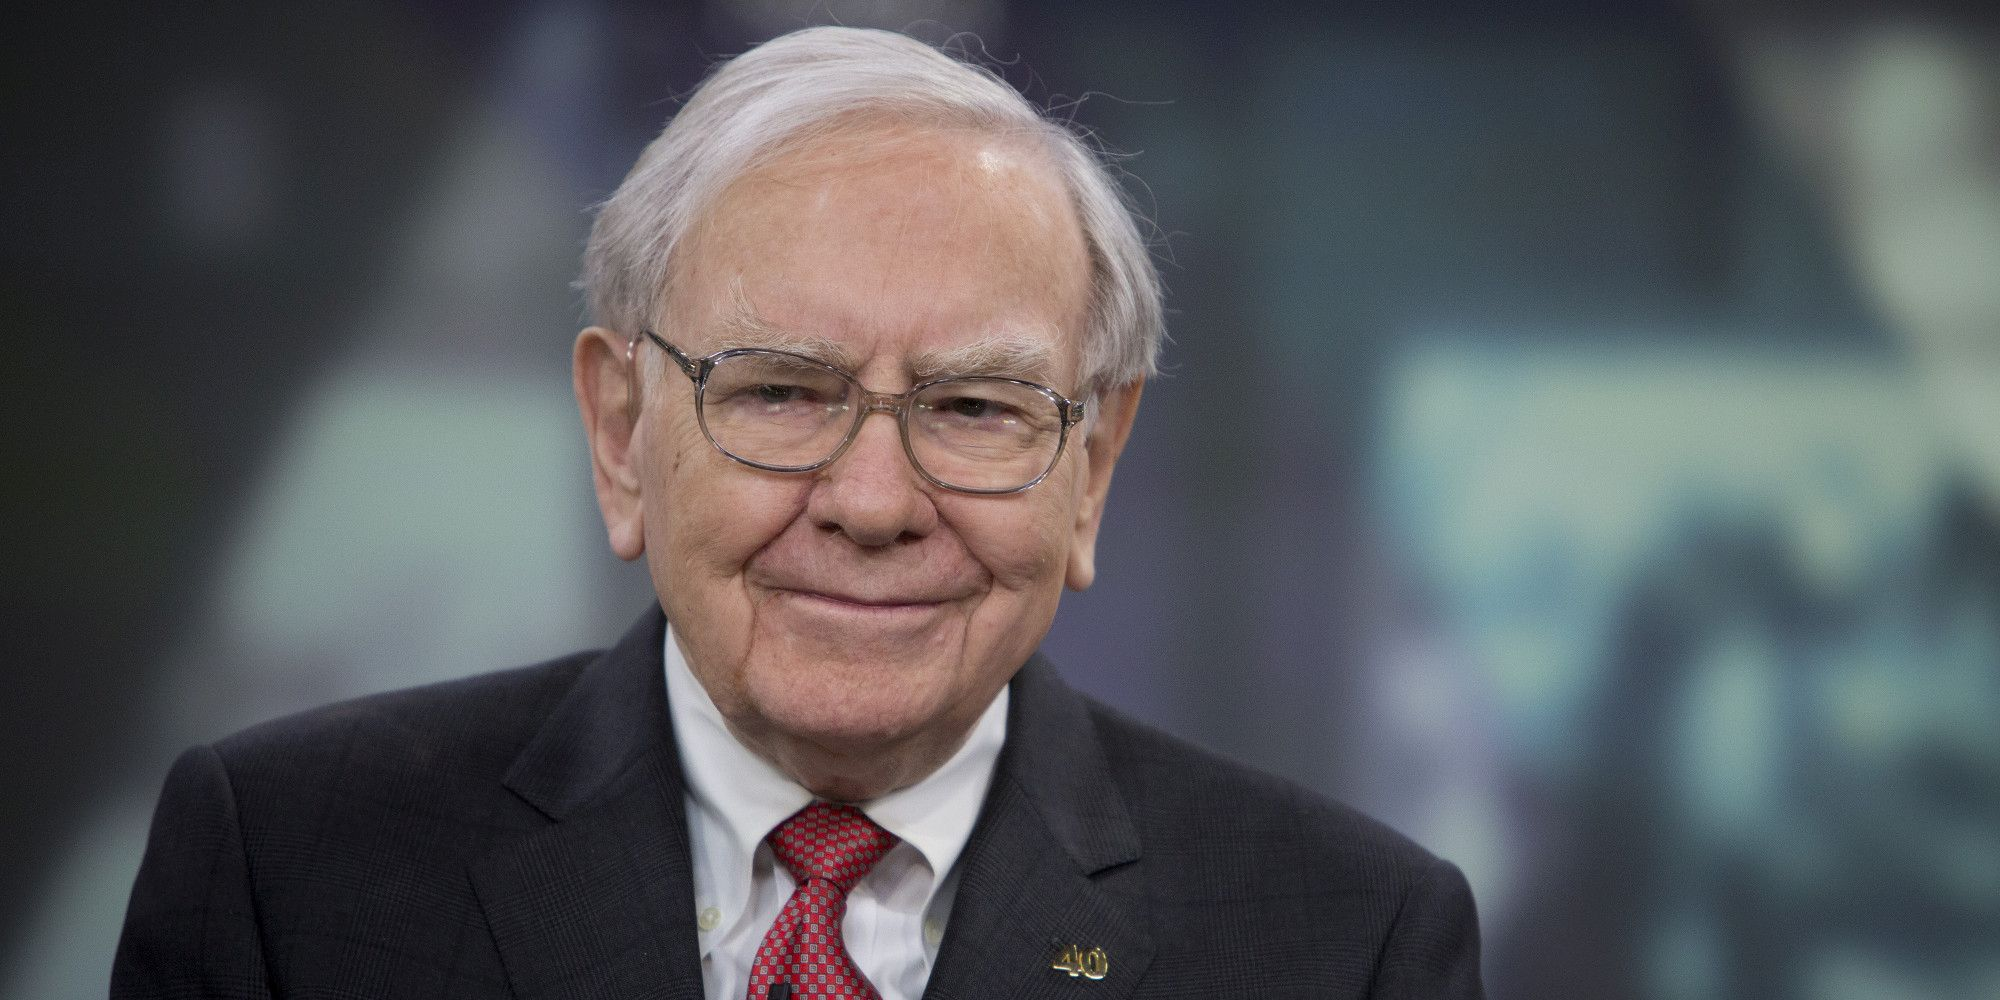 Buffett Says Airbnb Founders to Top Him in Championing Charity